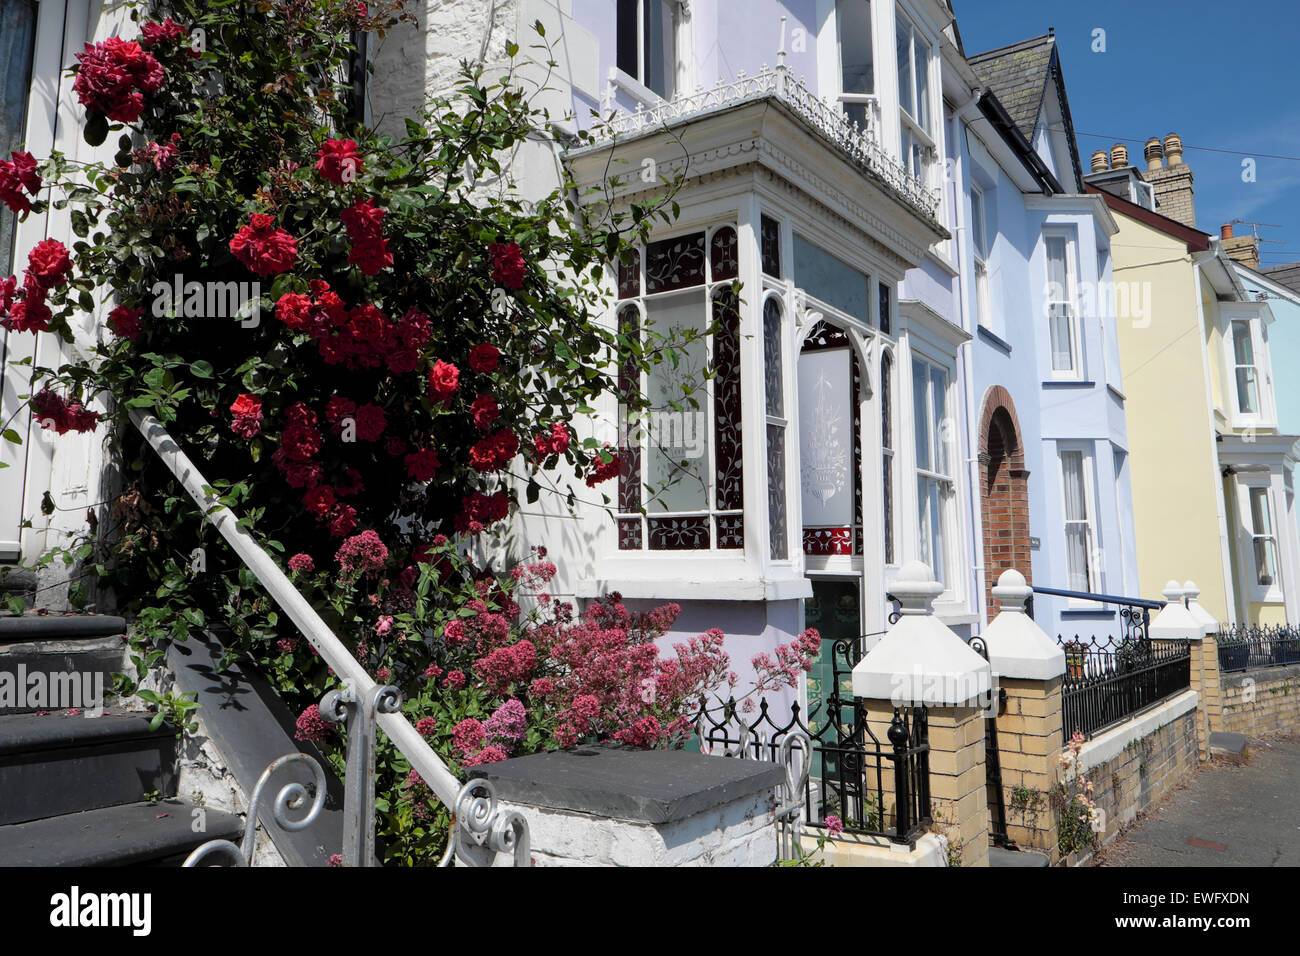 Danse de feu red climbing rose on front of a house on High Terrace in New Quay, Ceredigion Wales UK  KATHY DEWITT - Stock Image